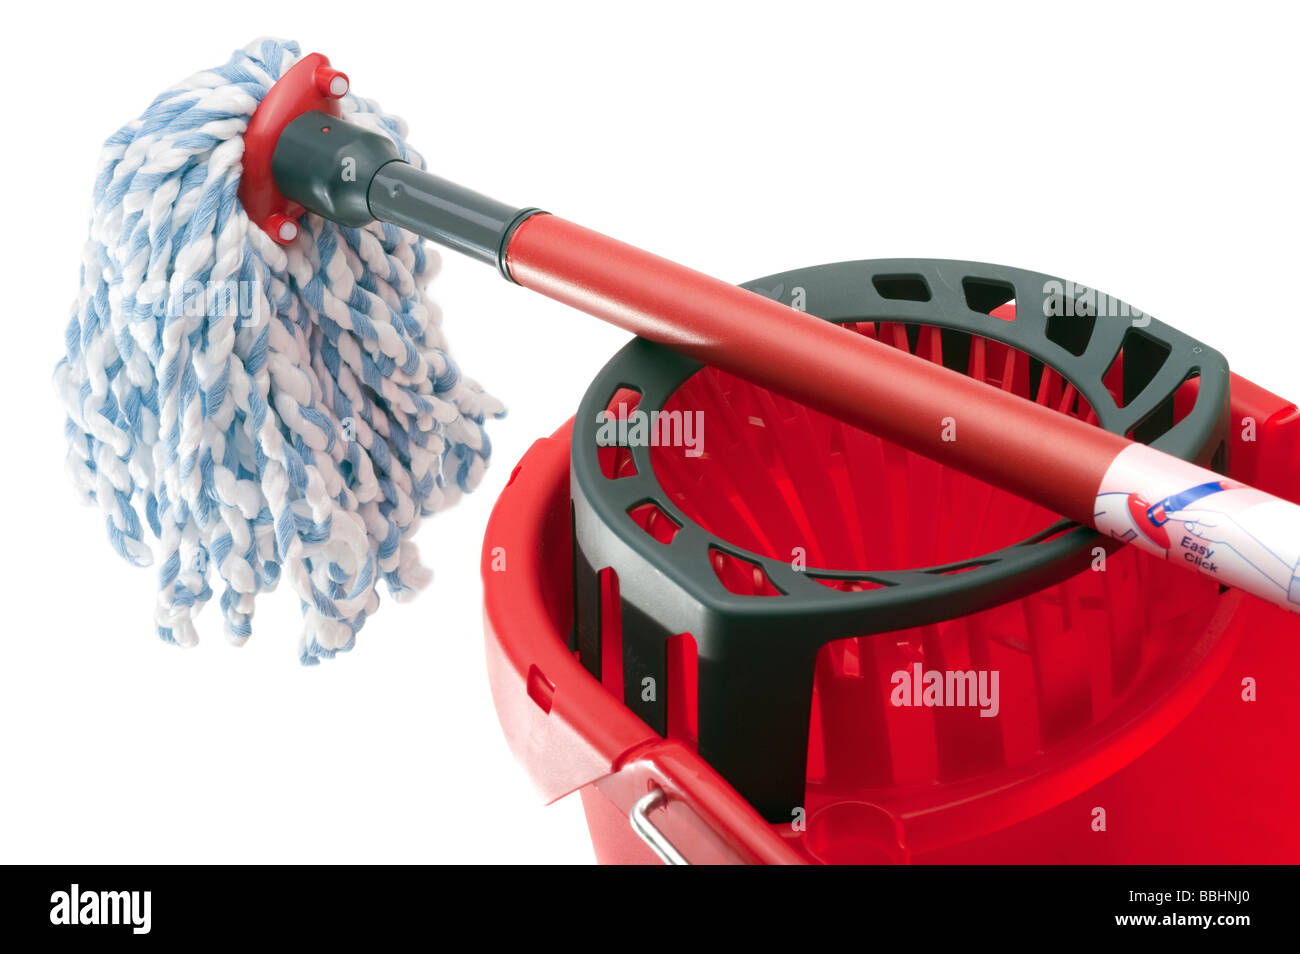 Red mop handle and plastic bucket - Stock Image